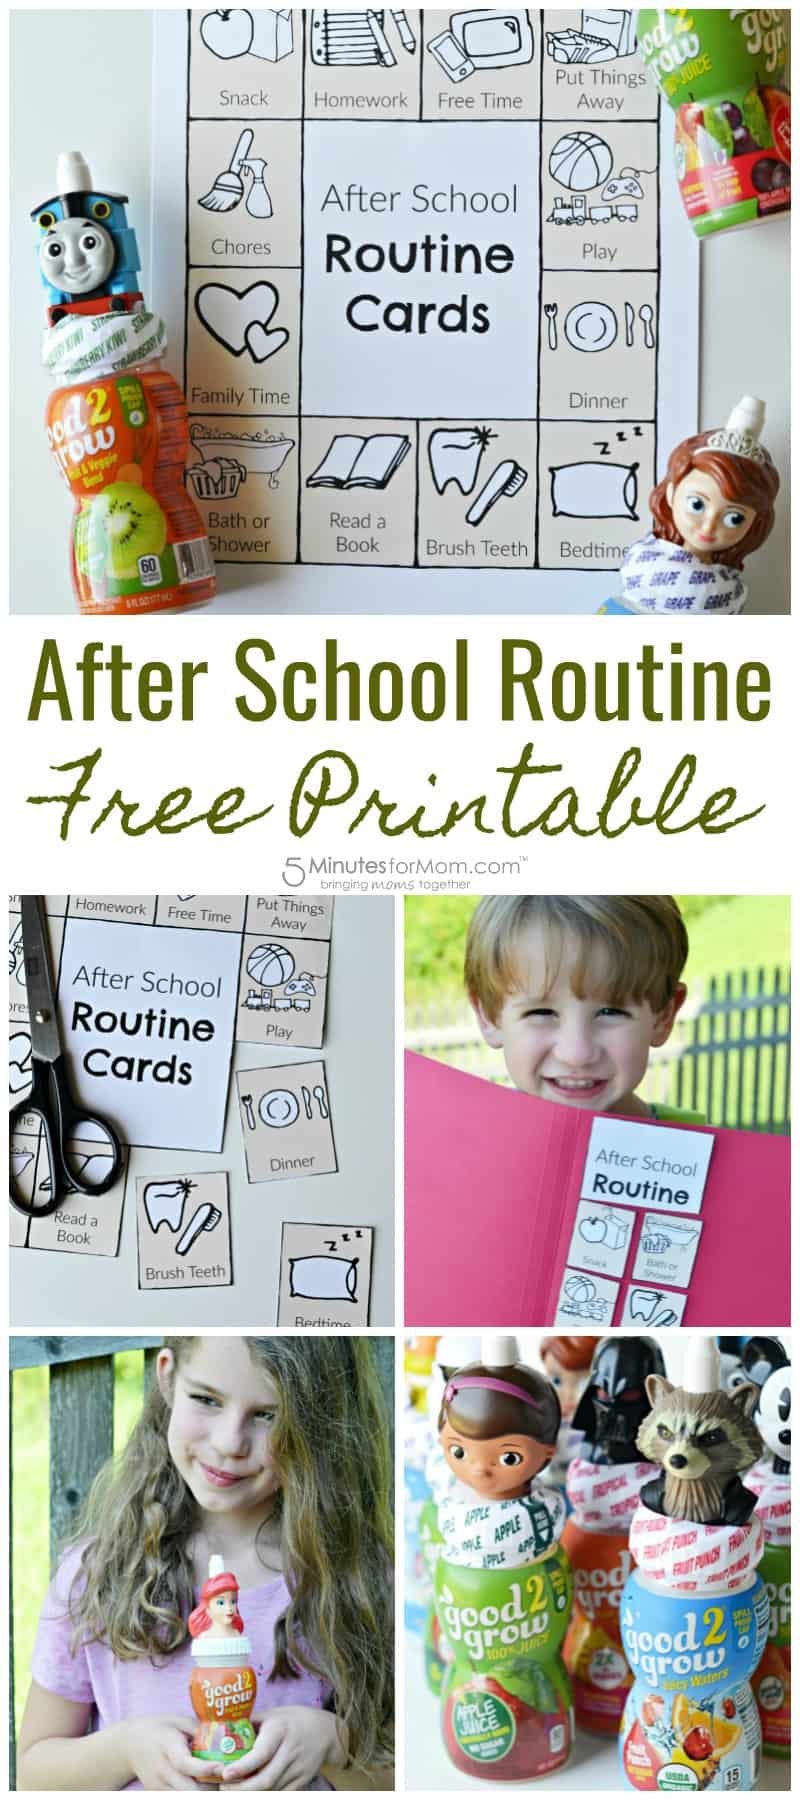 Fun After School Routine Free Printable